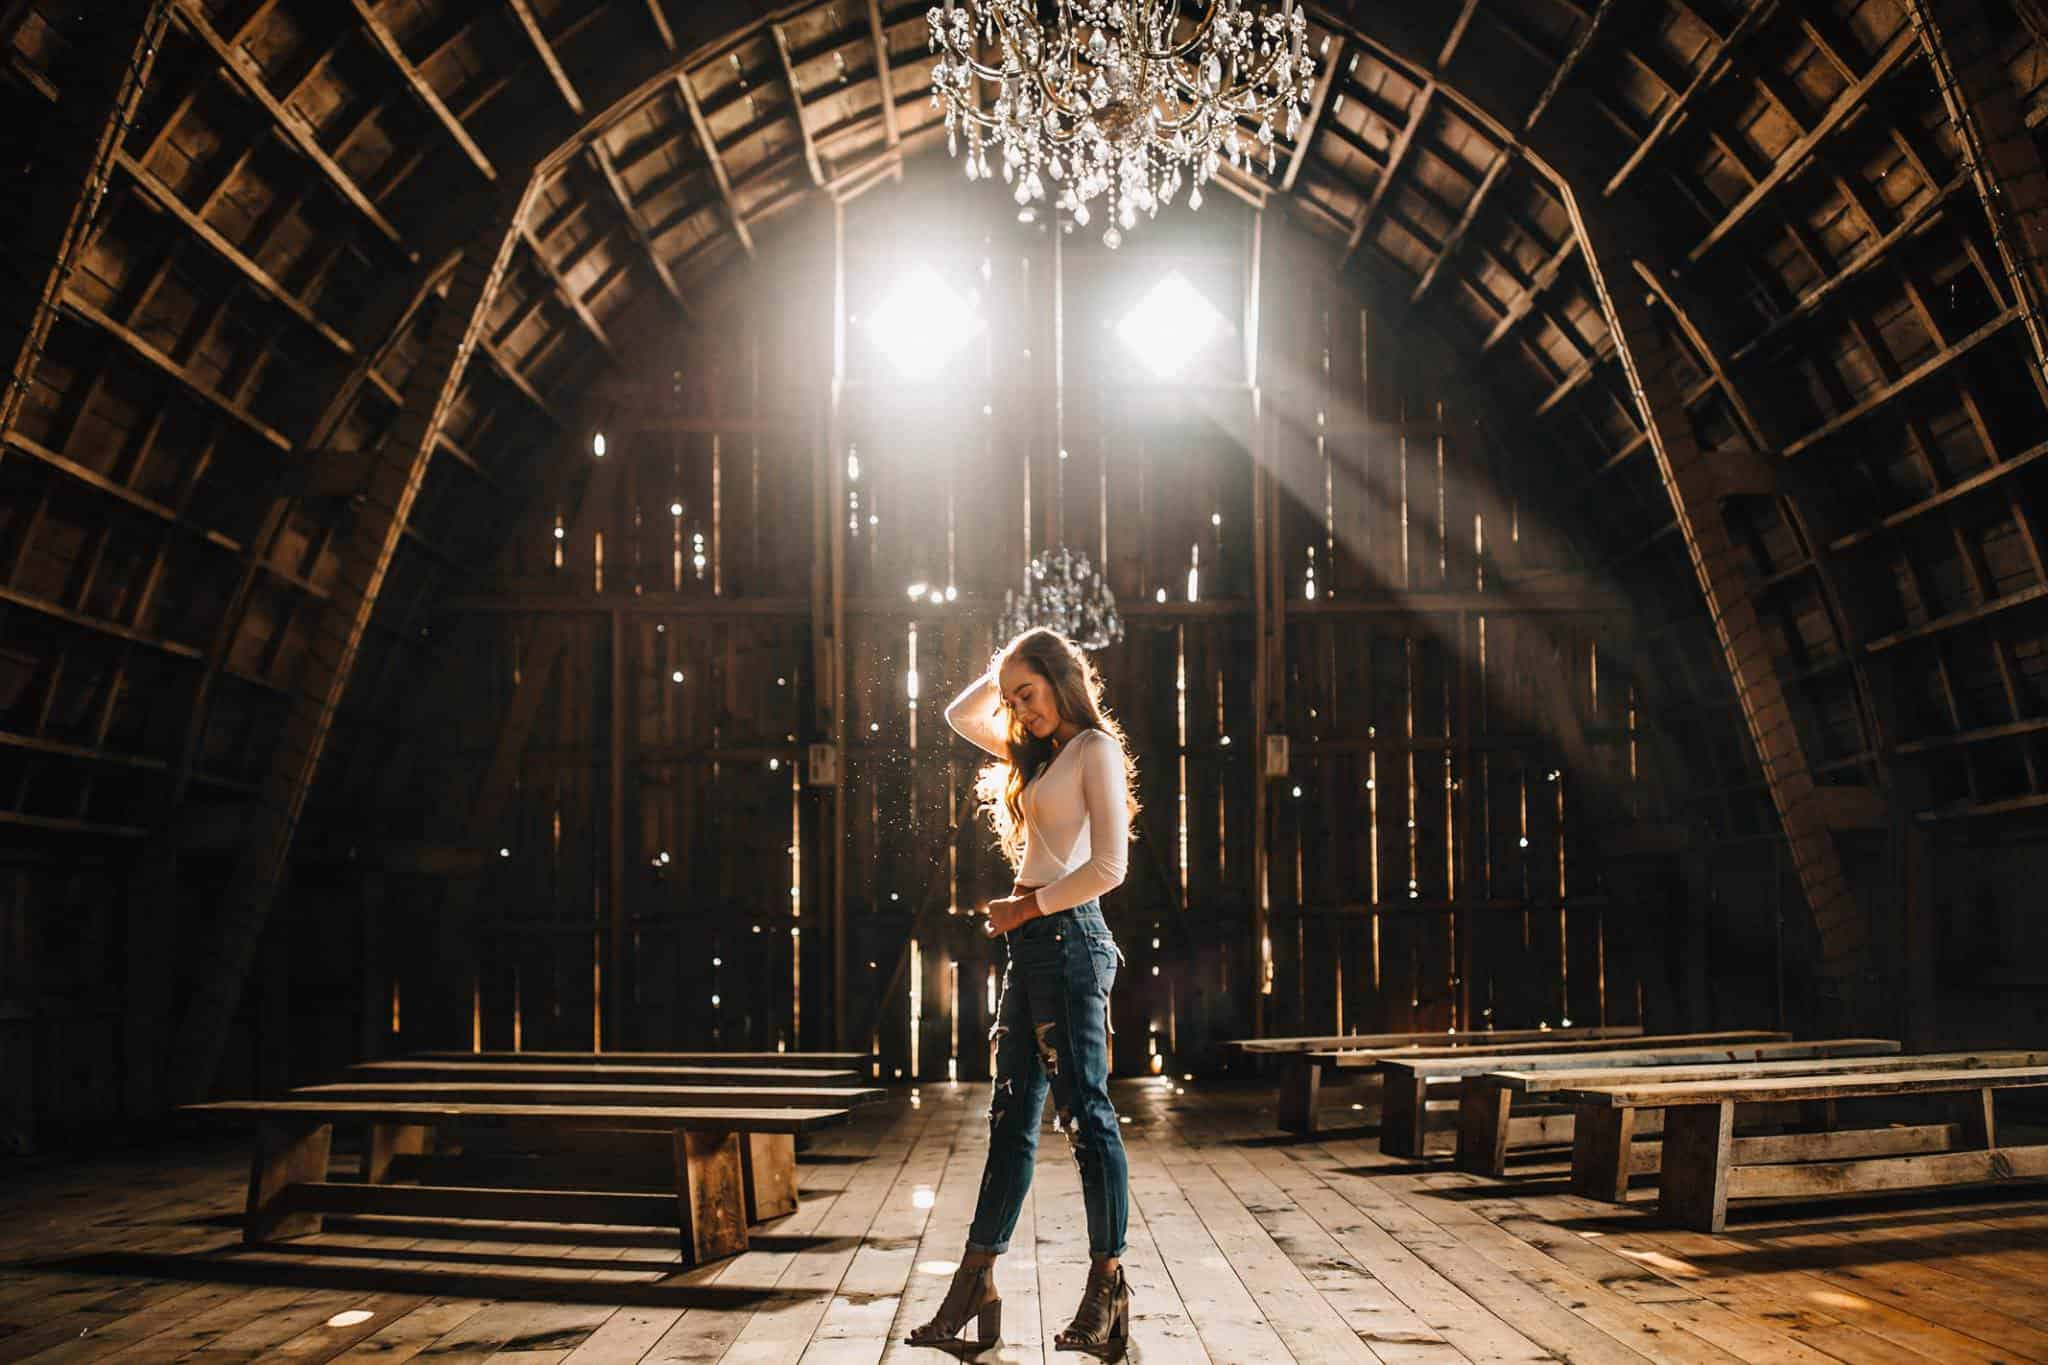 A girl standing in the middle of a barn where the sunlight breaks through the windows